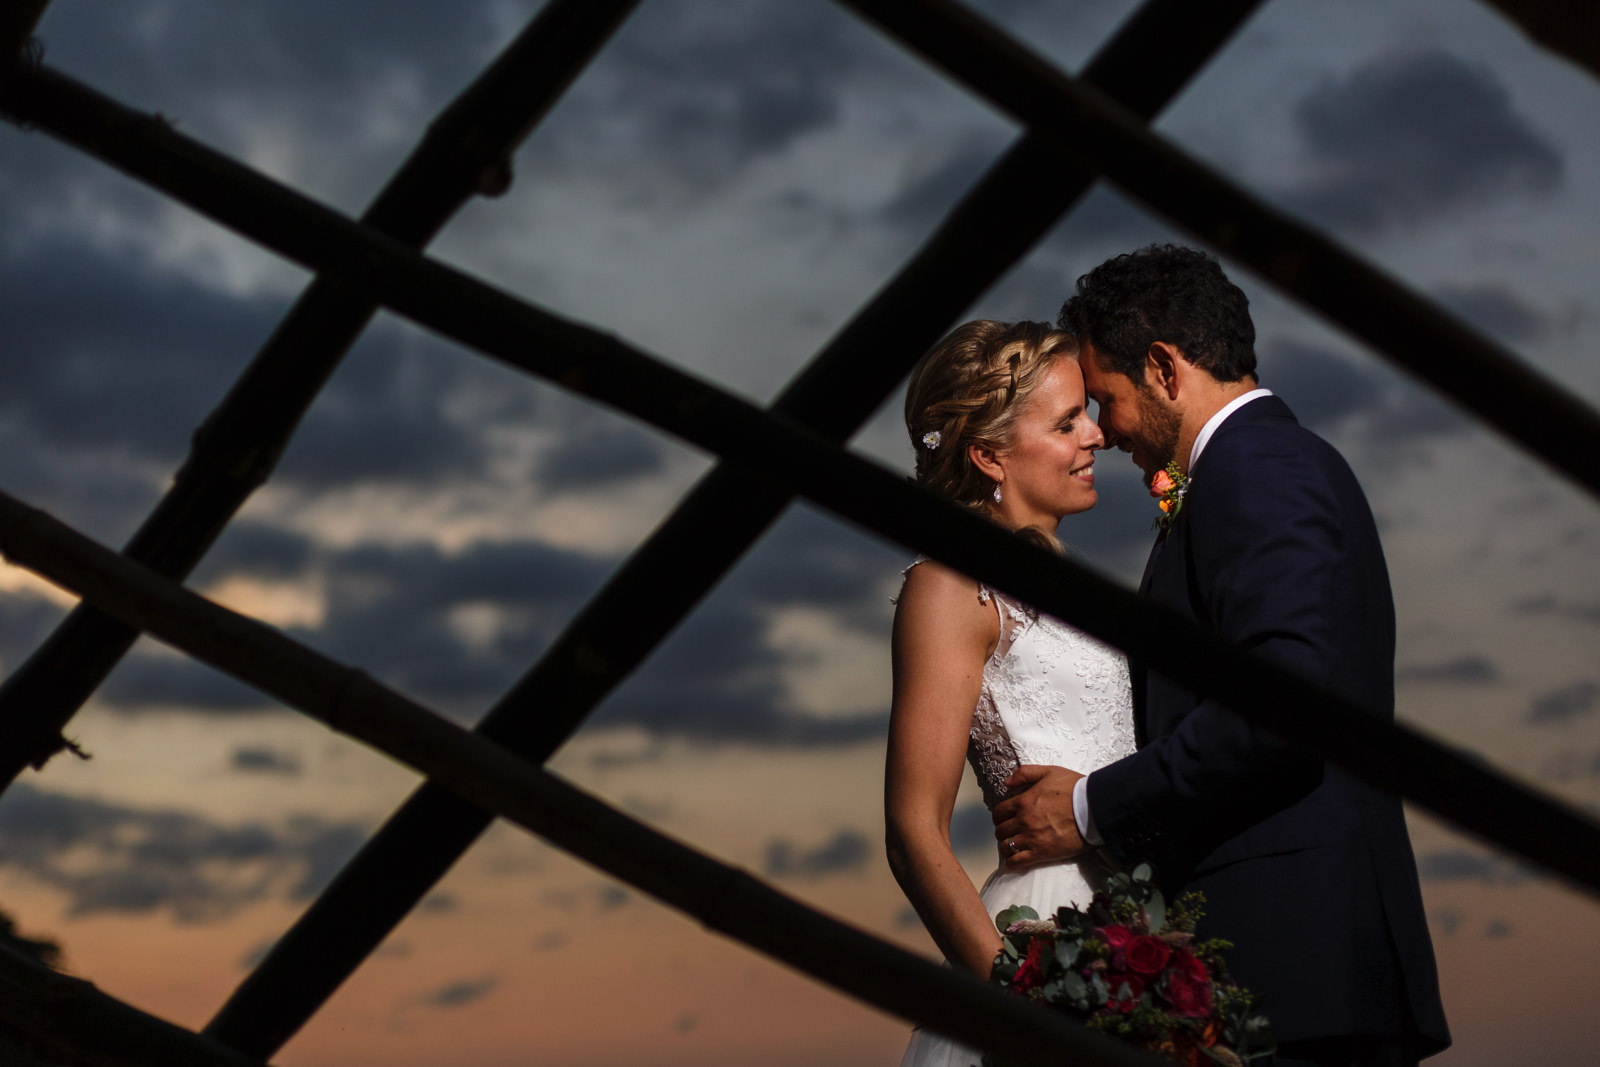 Silhouette of the groom and bamboo grid while bride stands under the light during sunset in the Mexican pacific